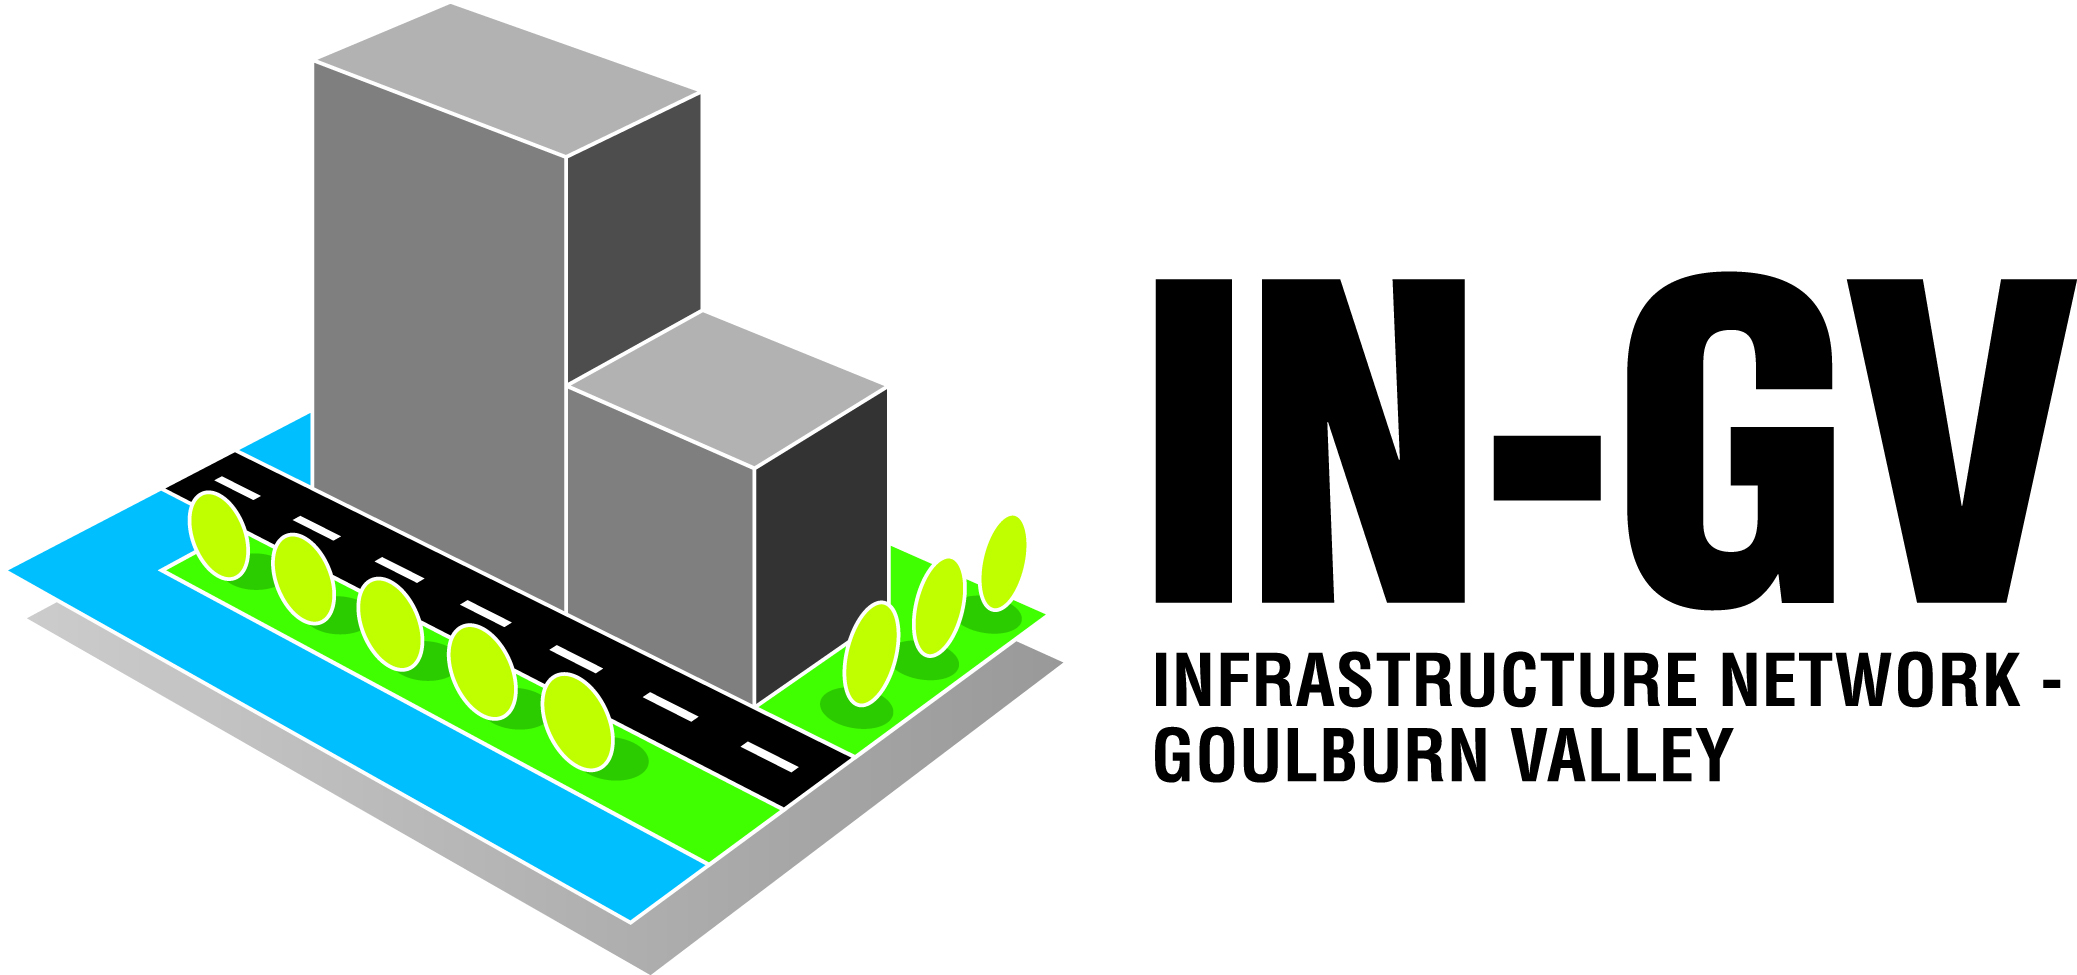 Infrastructure Network - Goulburn Valley Incorporated